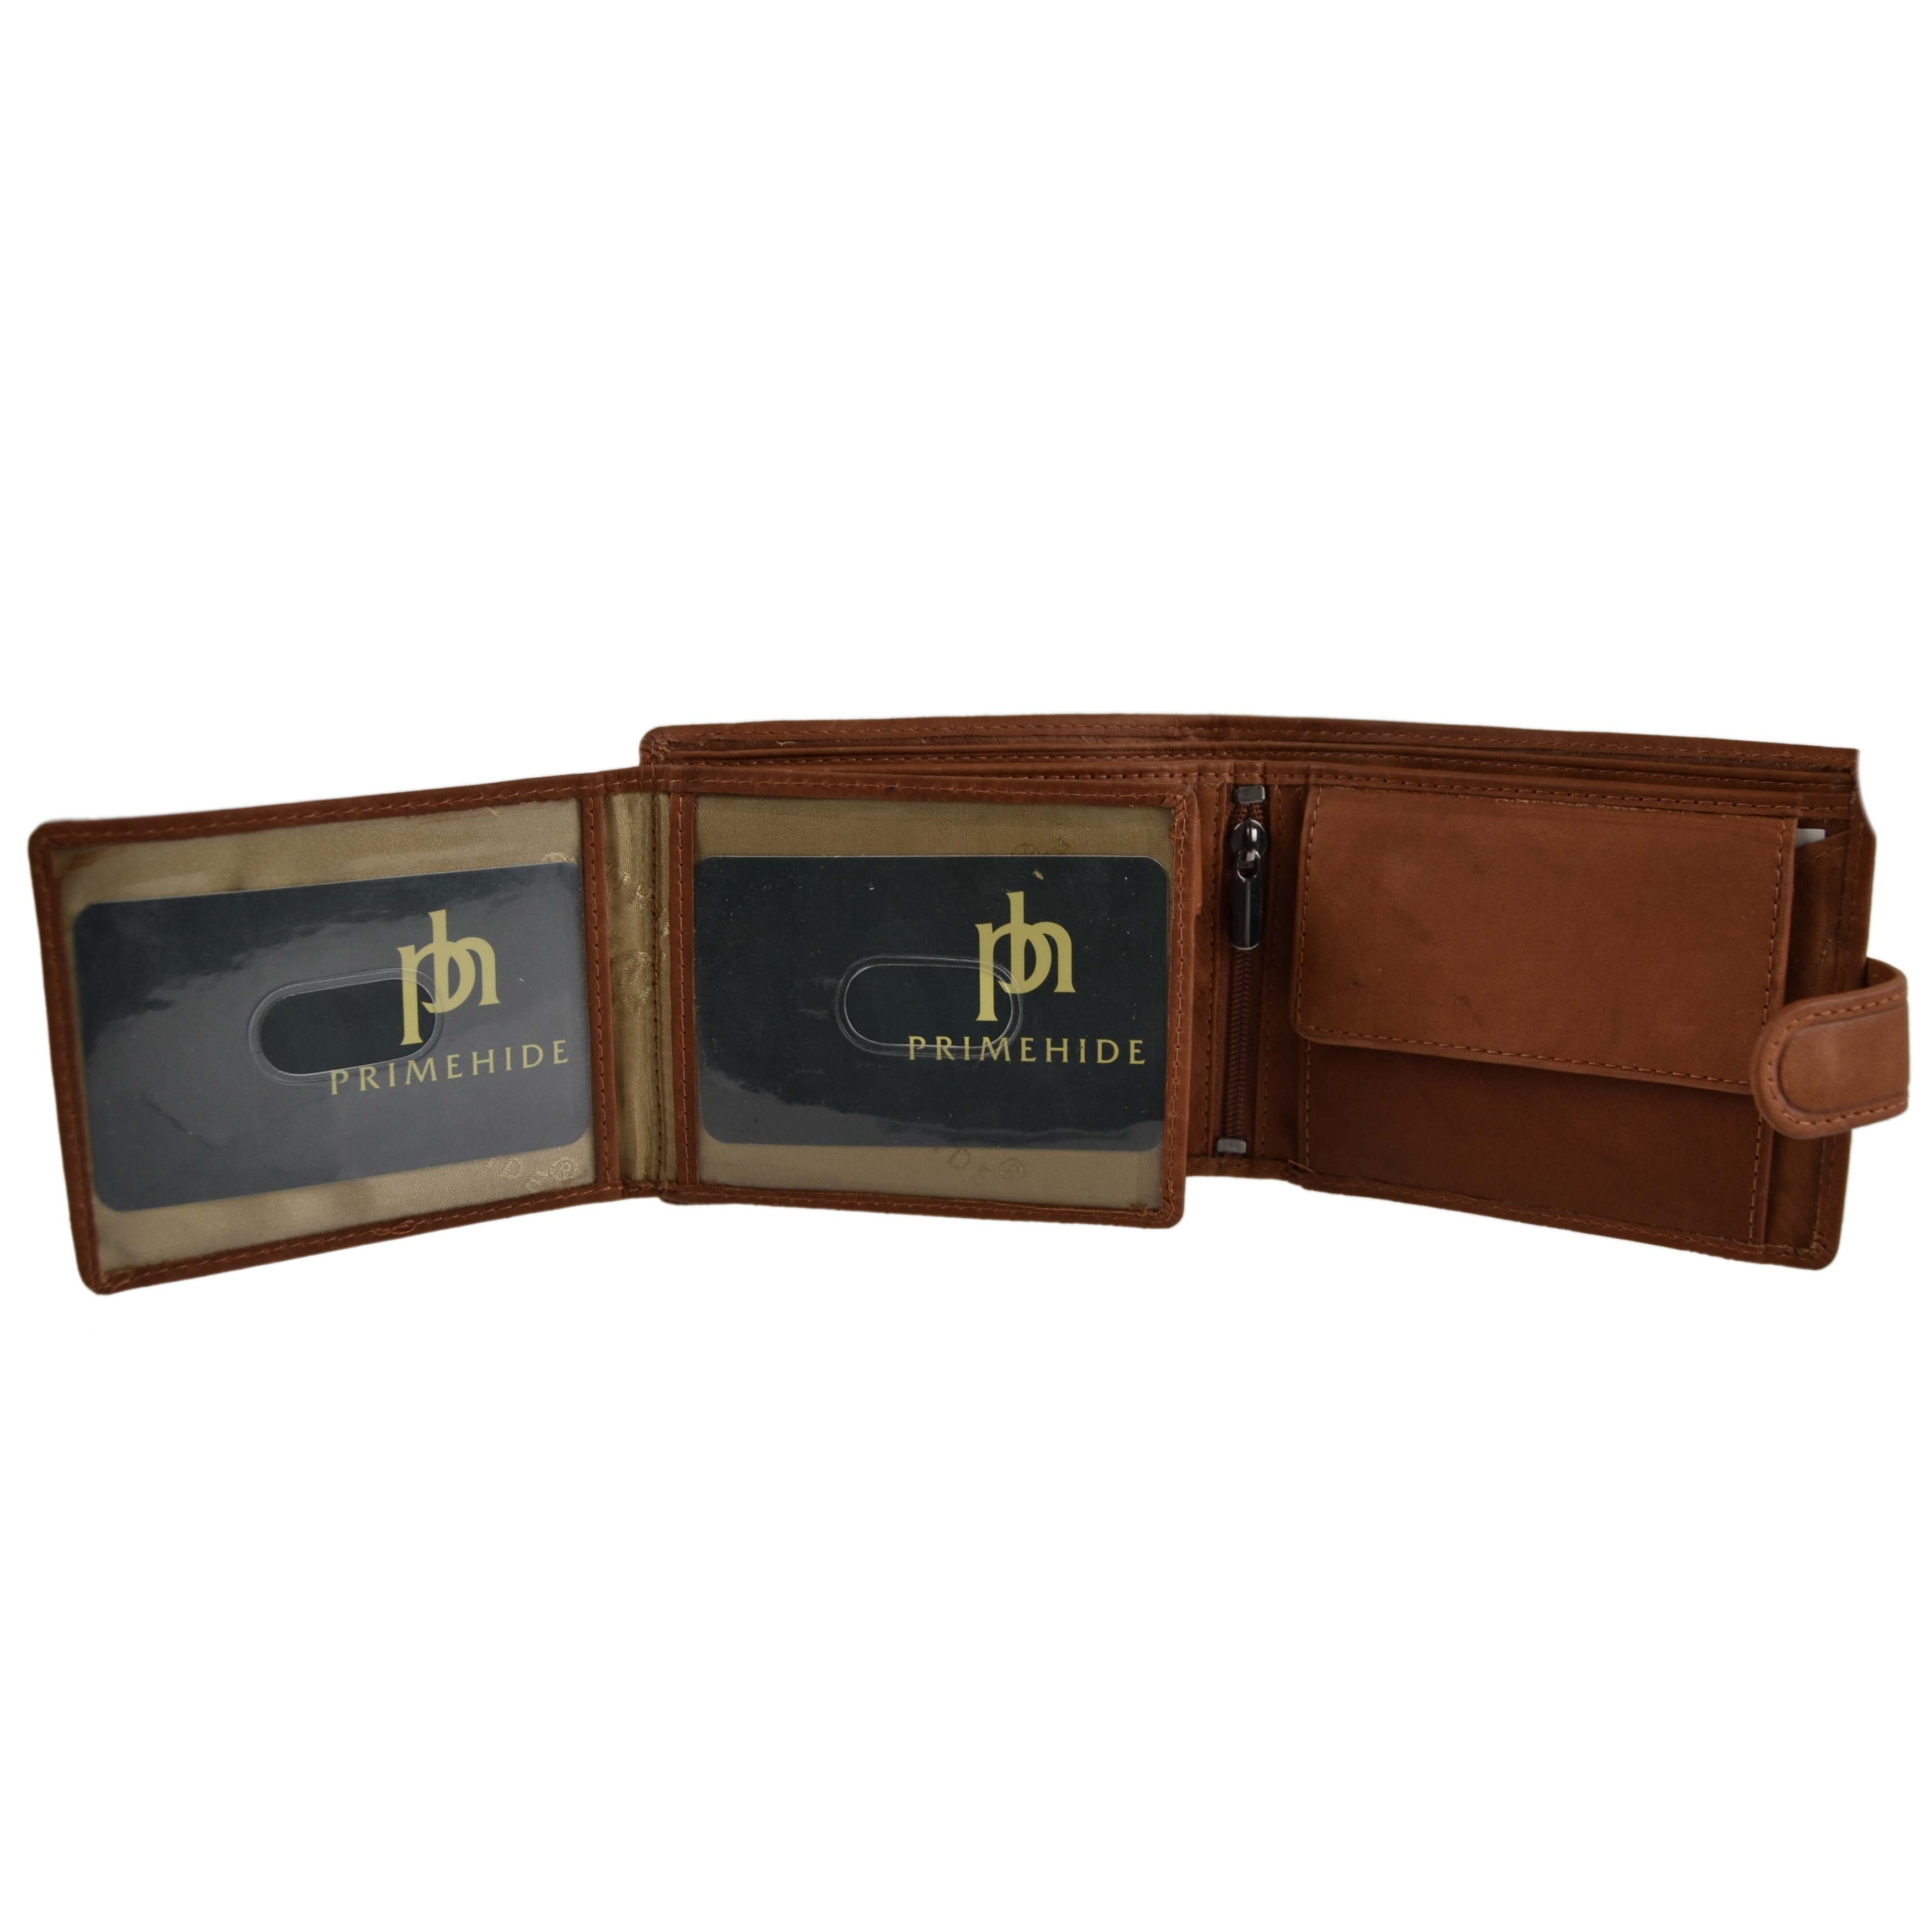 Mens-Quality-Leather-Wallet-by-Prime-Hide-Gift-Boxed-Stylish-with-Coin-Pocket thumbnail 21